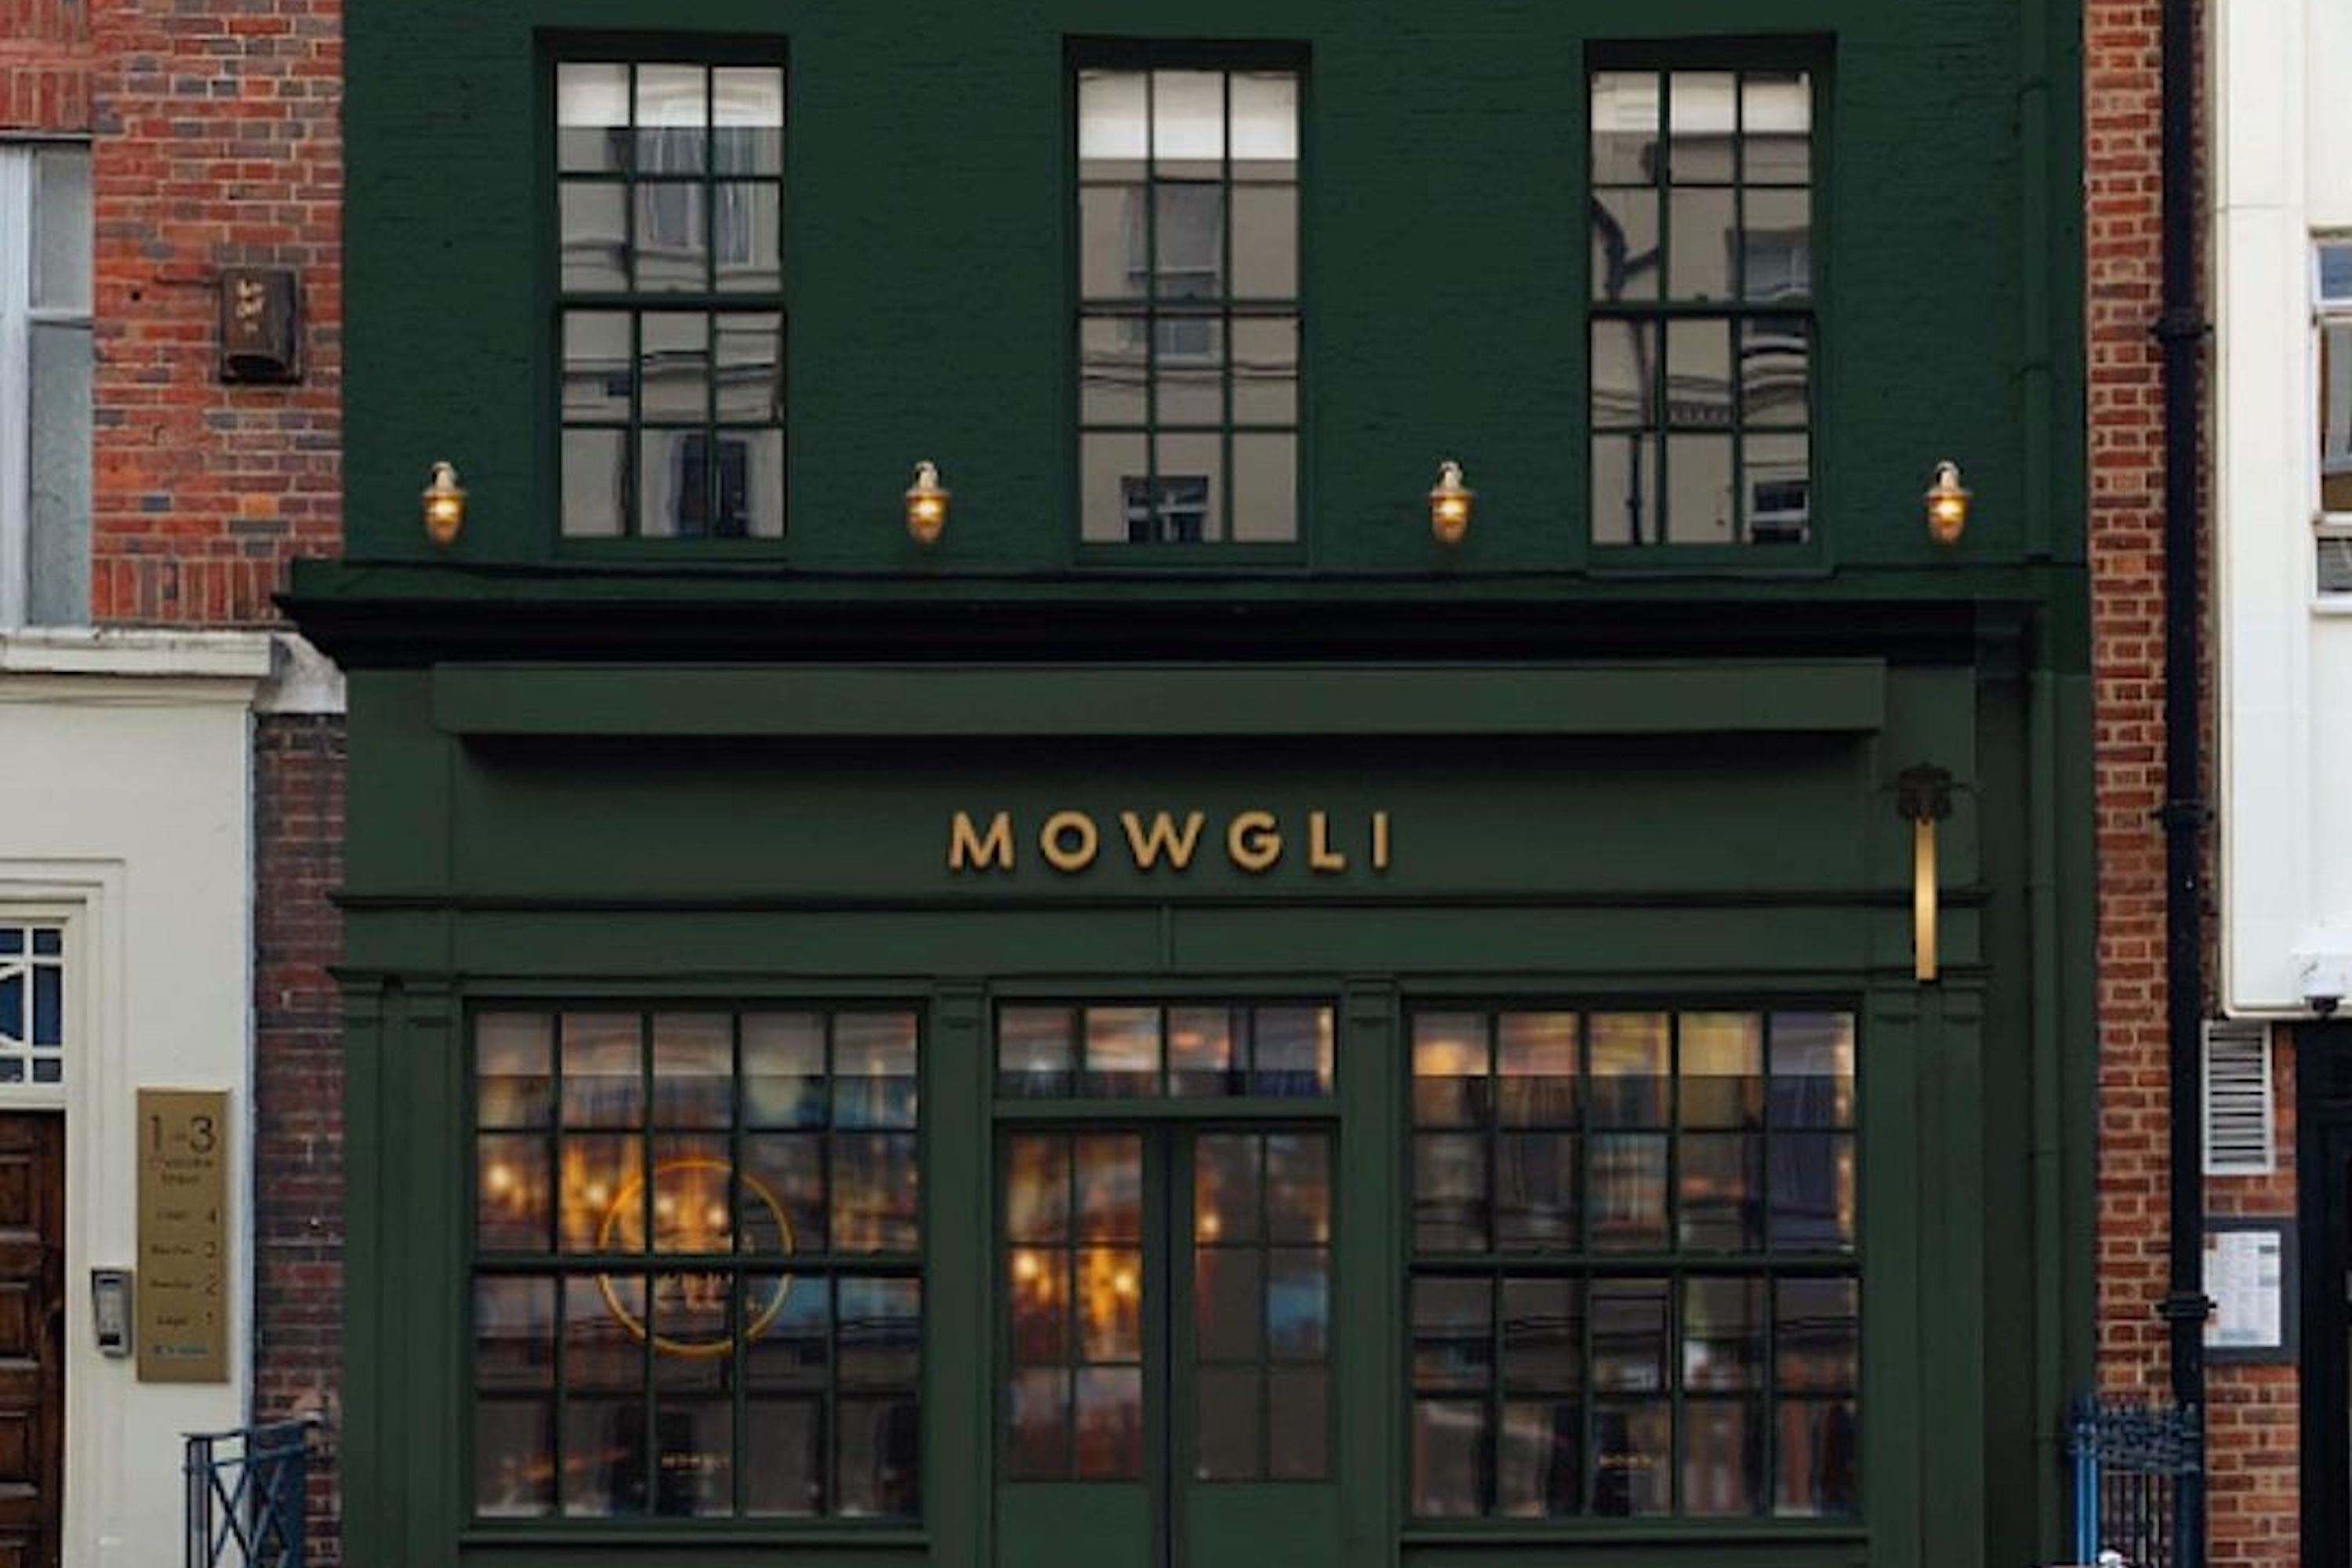 """A rendering of the upcoming Mowgli restaurant on Charlotte Street in Fitzrovia, with a dark green frontage and awning and """"Mowgli"""" written in capital letters and gold type"""